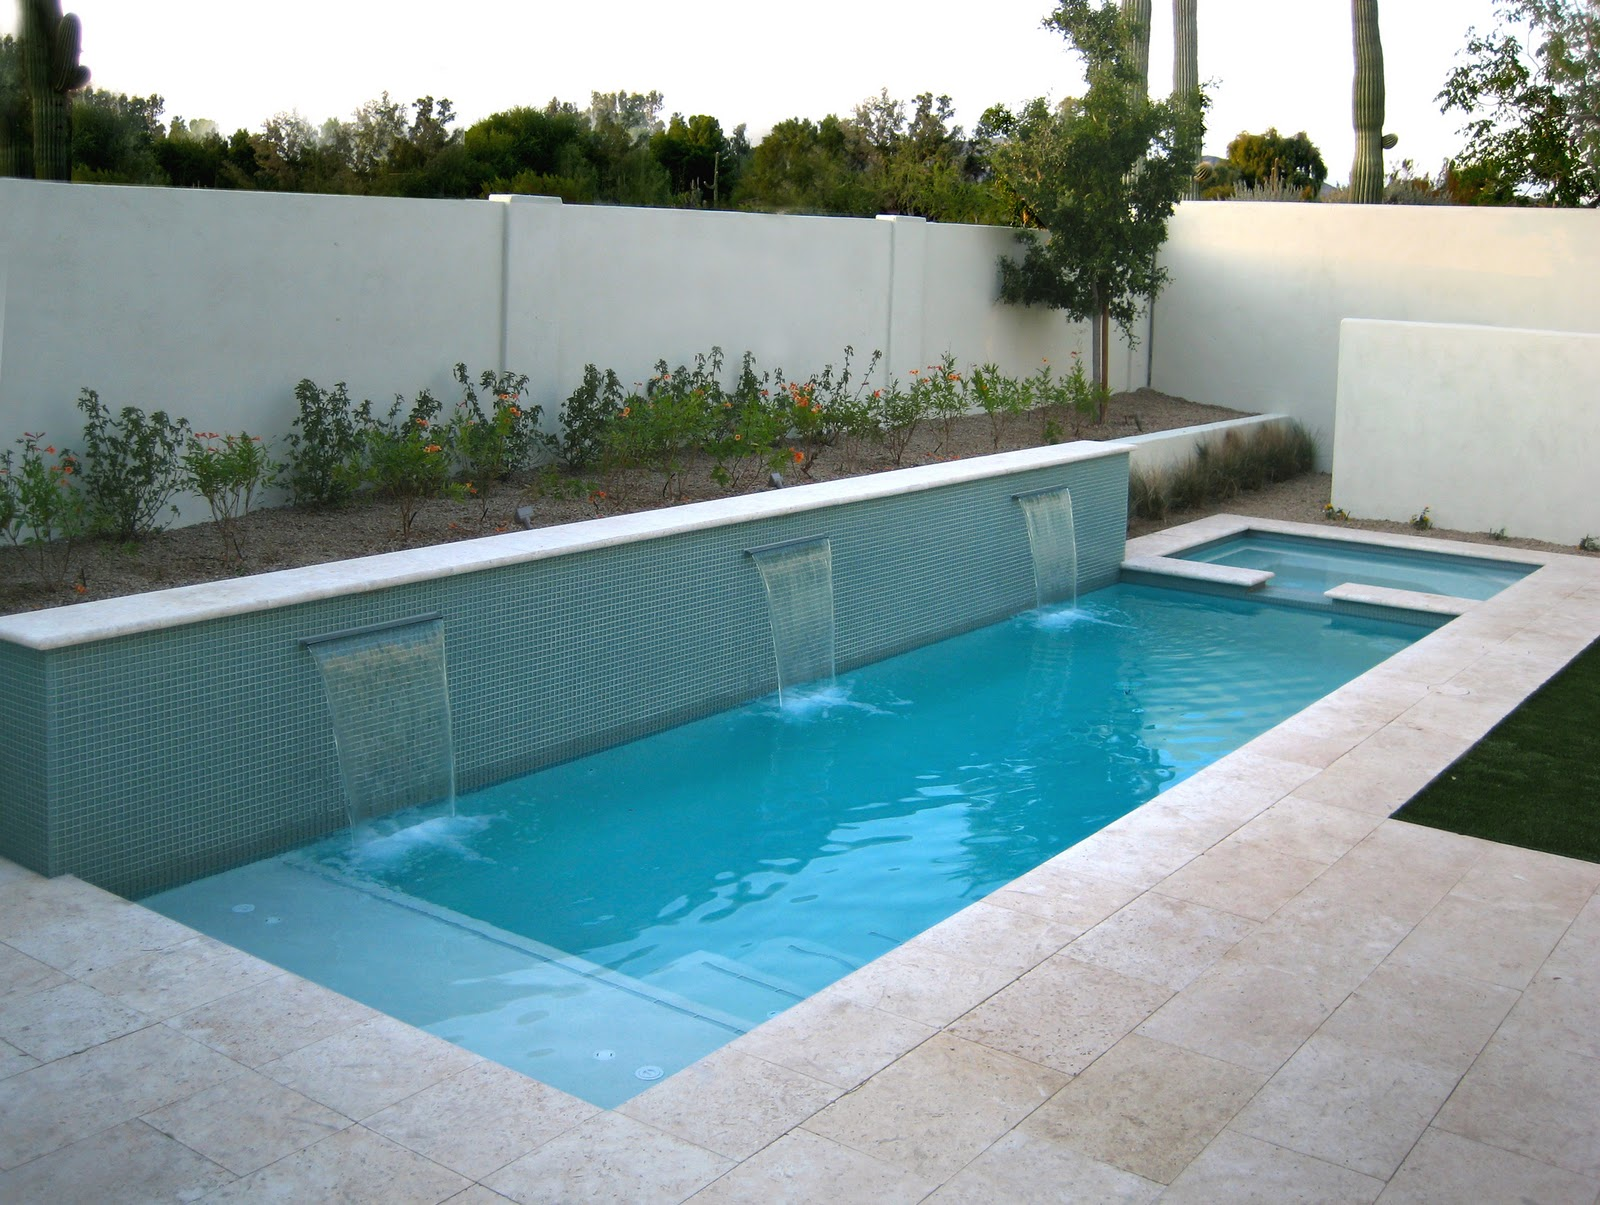 Alpentile glass tile swimming pools water feature or for Water pool design